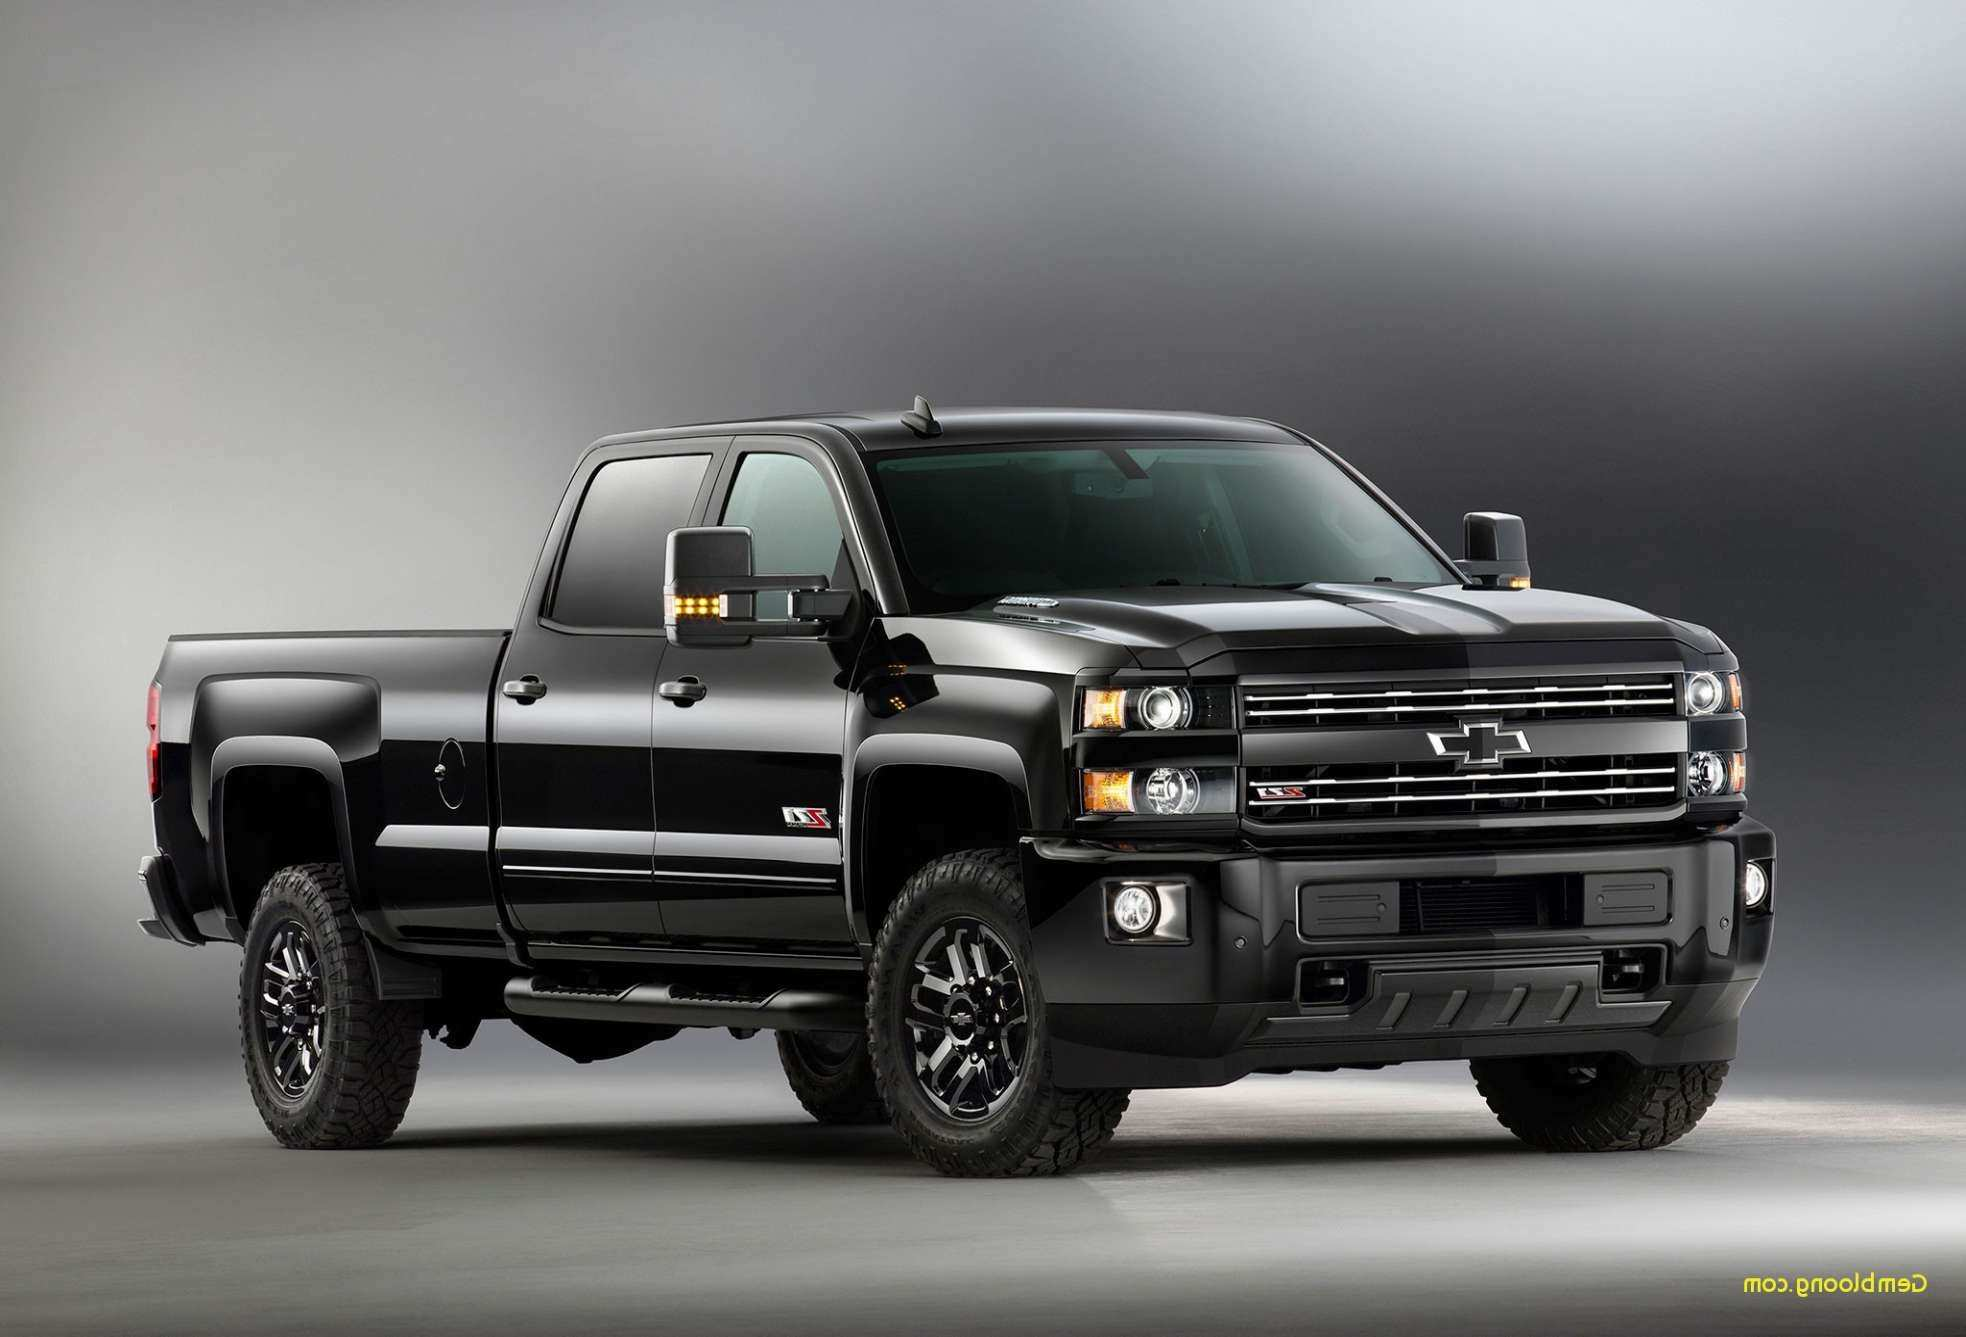 23 Gallery of New 2019 Gmc Sierra Vs Silverado Review Specs And Release Date Performance and New Engine with New 2019 Gmc Sierra Vs Silverado Review Specs And Release Date